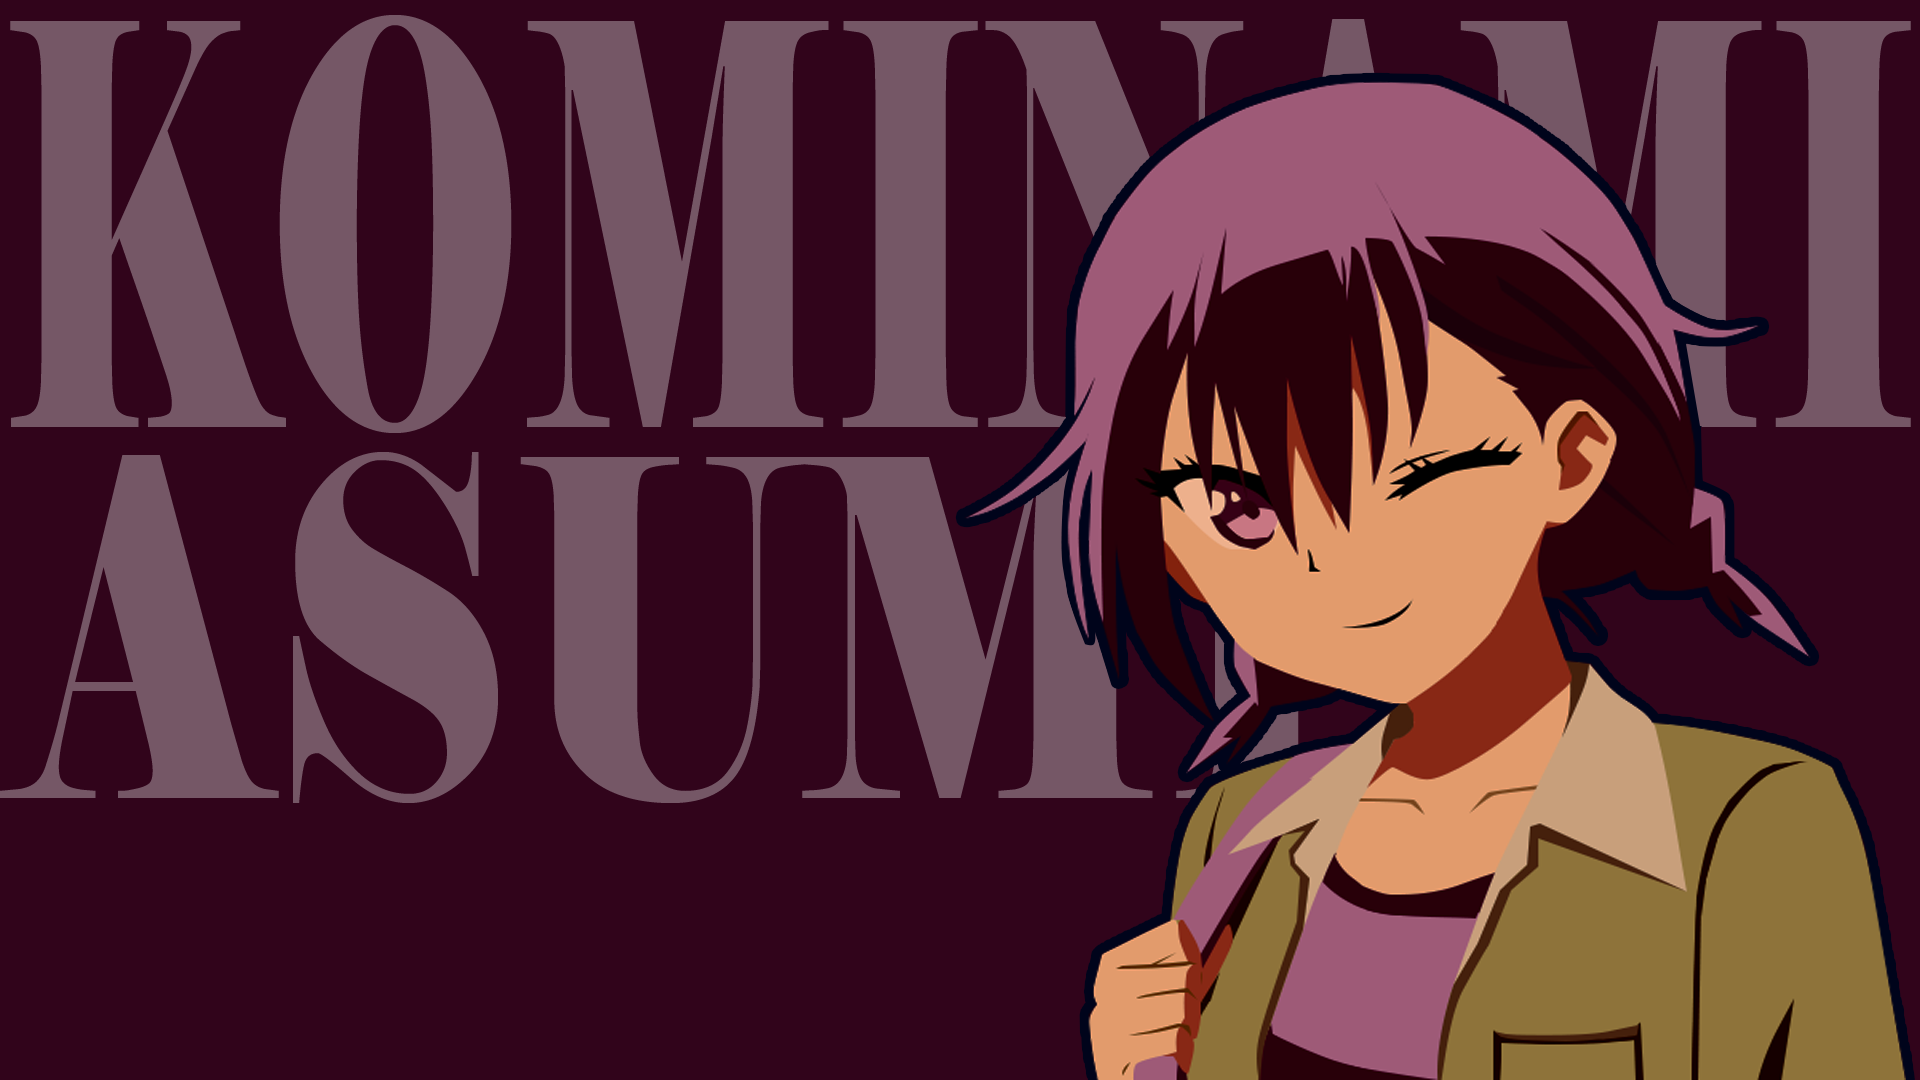 1920x1080 Kominami Asumi We Never Learn Wallpaper Background Image View Download Comment And Rate Wa In 2020 Wallpaper Backgrounds Background Images Background